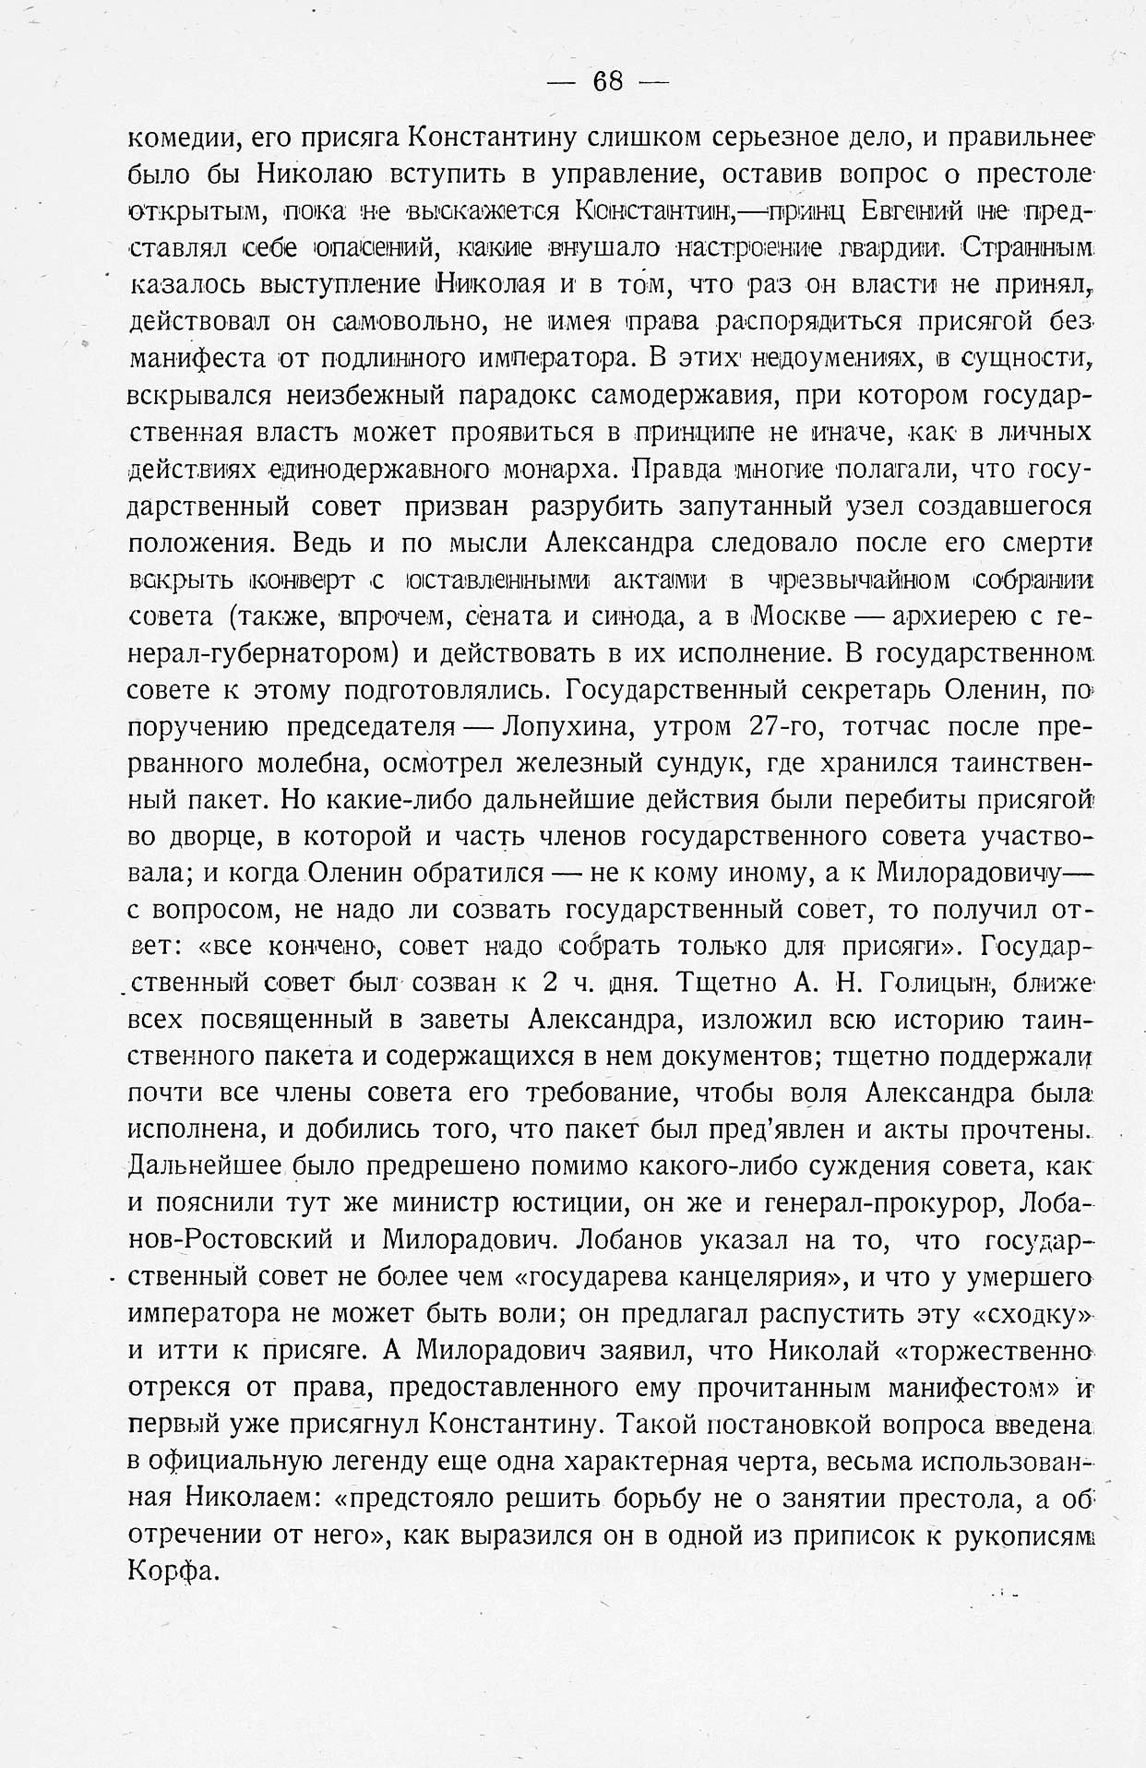 http://elib.shpl.ru/pages/565965/zooms/7